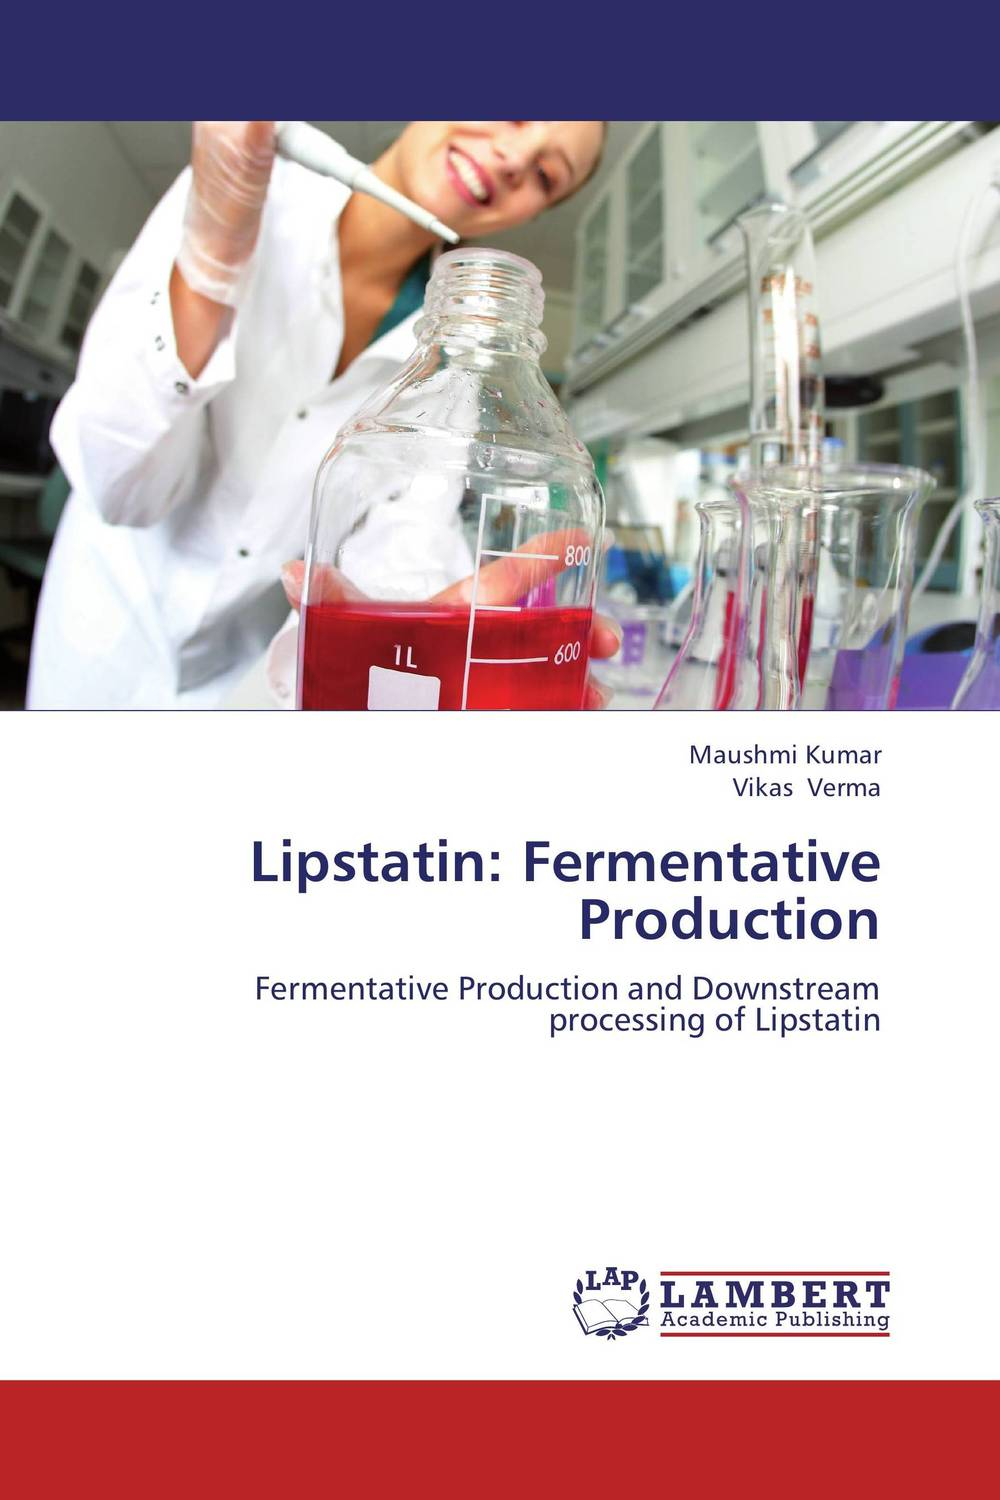 Lipstatin: Fermentative Production maushmi kumar and vikas verma lipstatin fermentative production